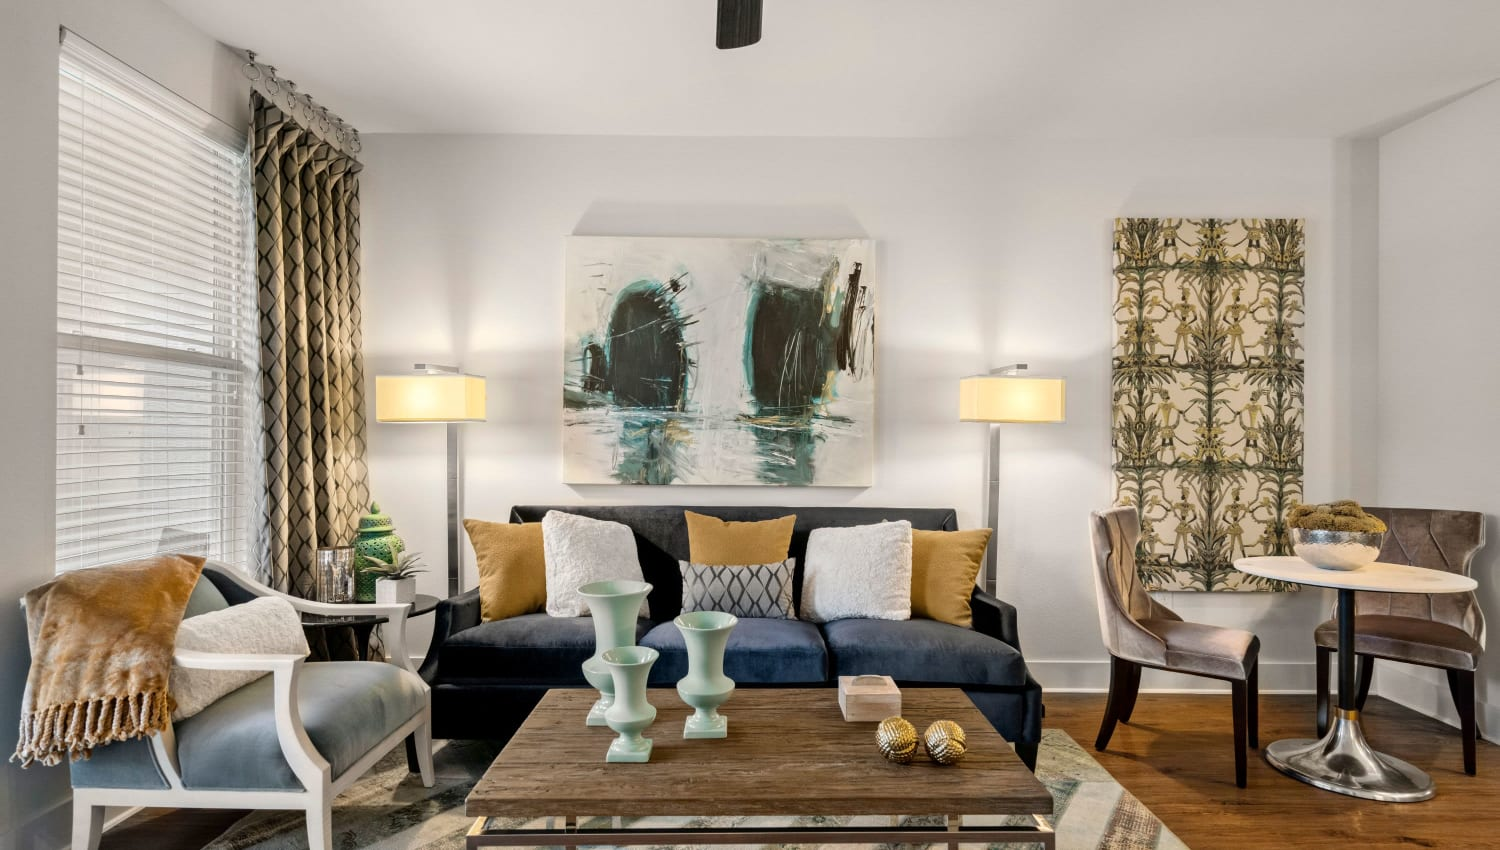 Living room at Olympus Grand Crossing in Katy, Texas